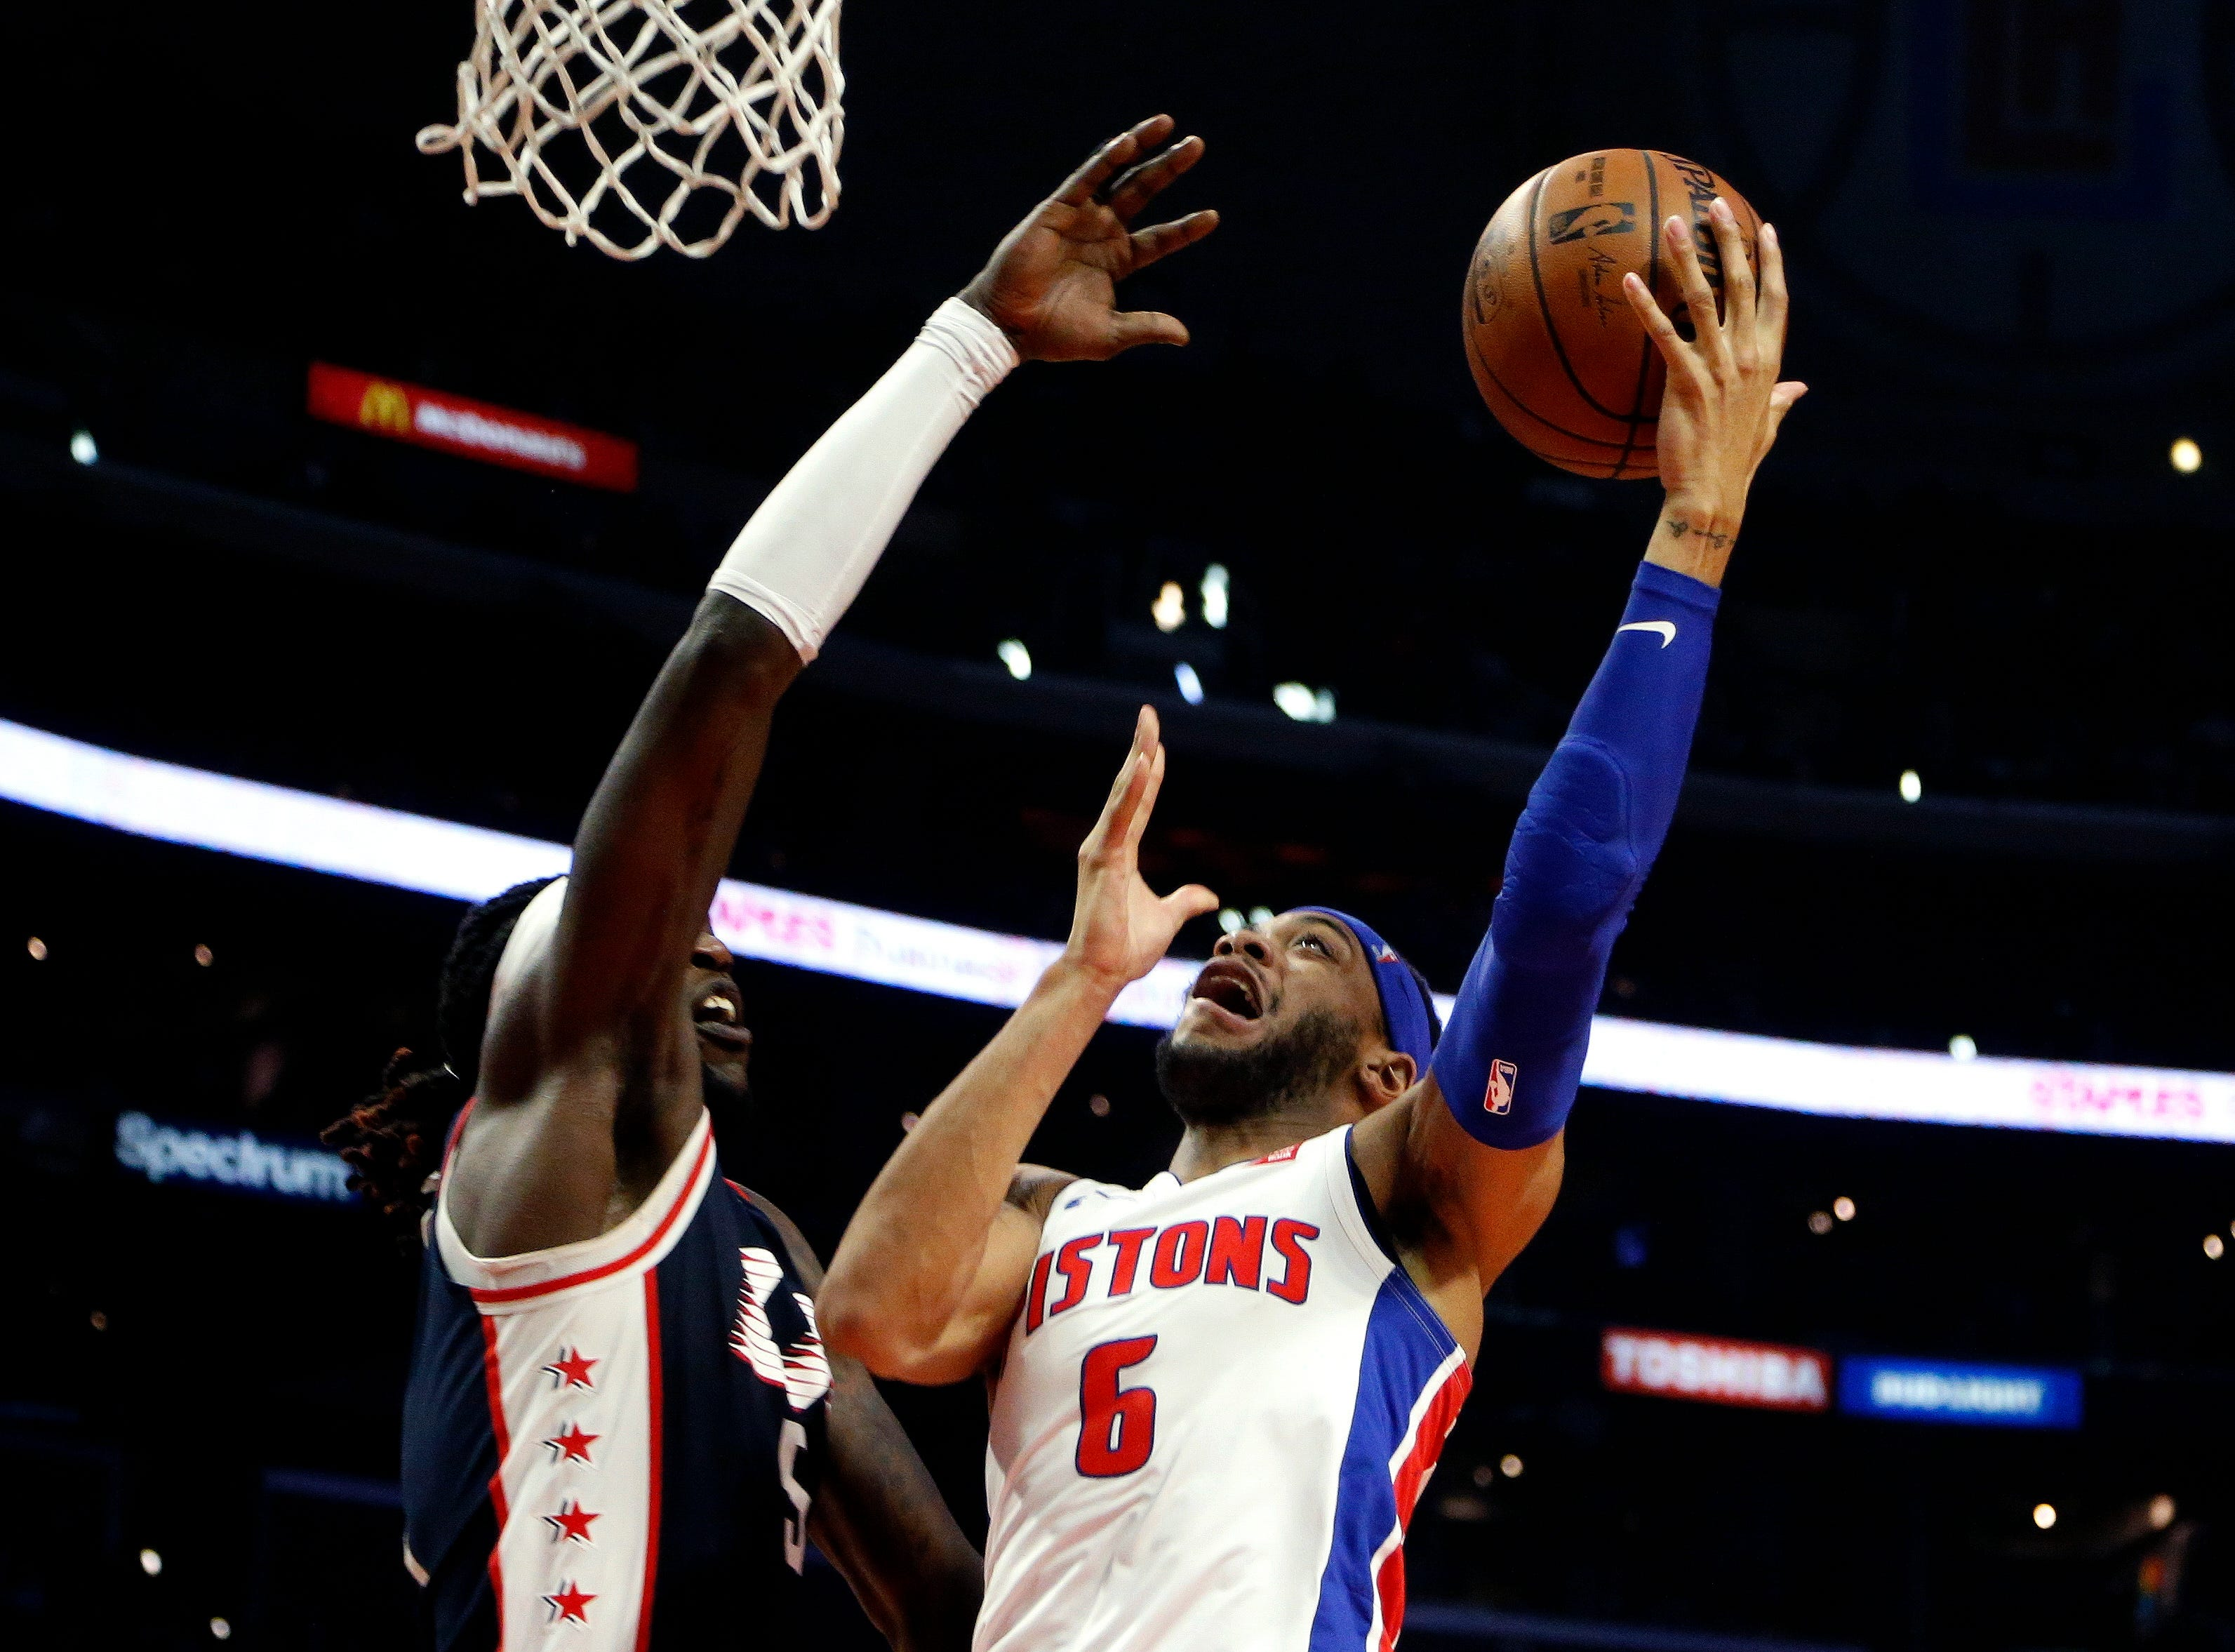 Detroit Pistons' Bruce Brown, right, goes to basket while defended by Los Angeles Clippers' Montrezl Harrell during the second half.